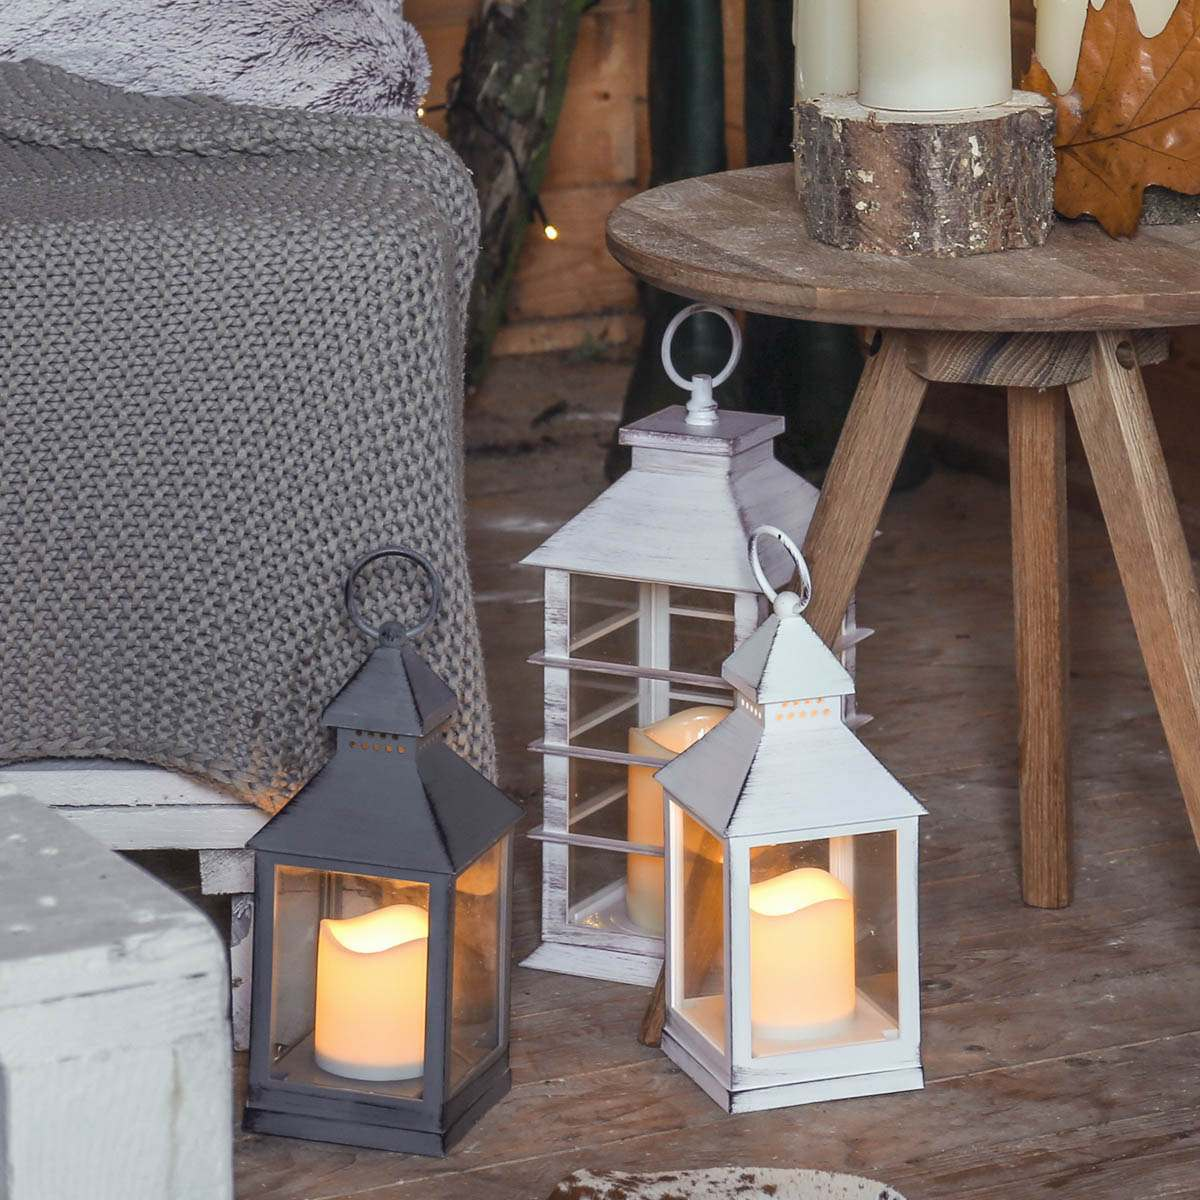 Porch Light Flickers When Off: Outdoor Battery Flickering Candle Lantern, 24cm